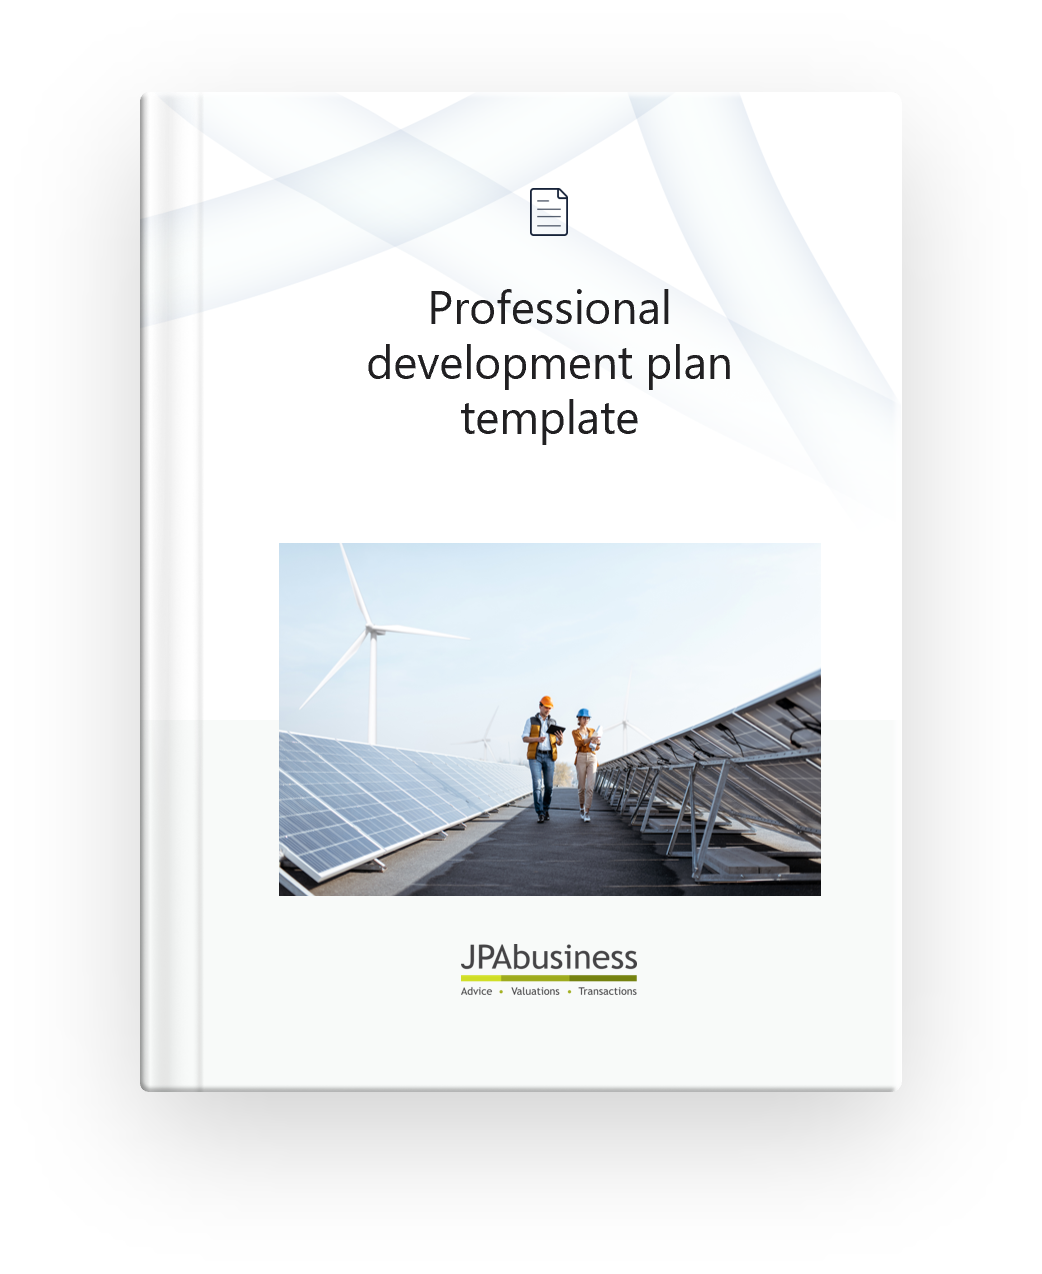 The_PD_Plan_Template